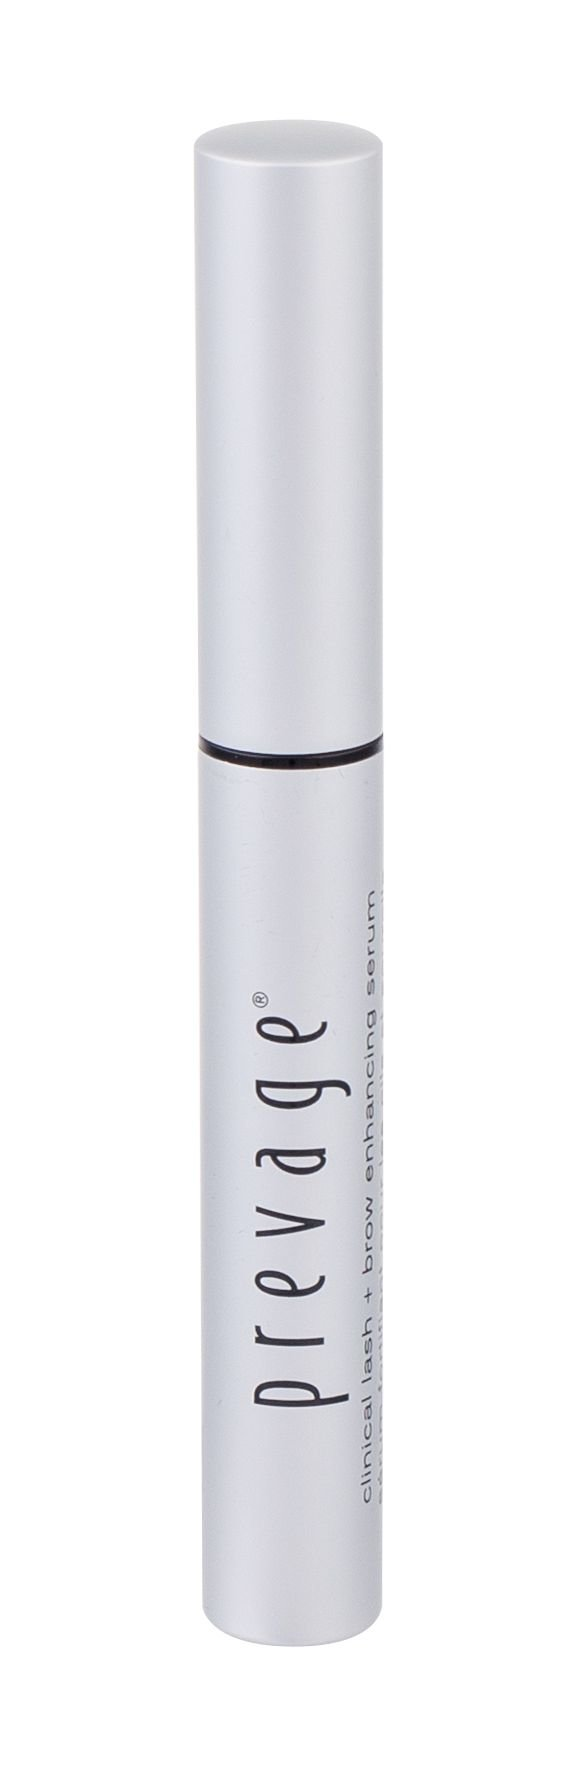 Elizabeth Arden Prevage Cosmetic 4ml